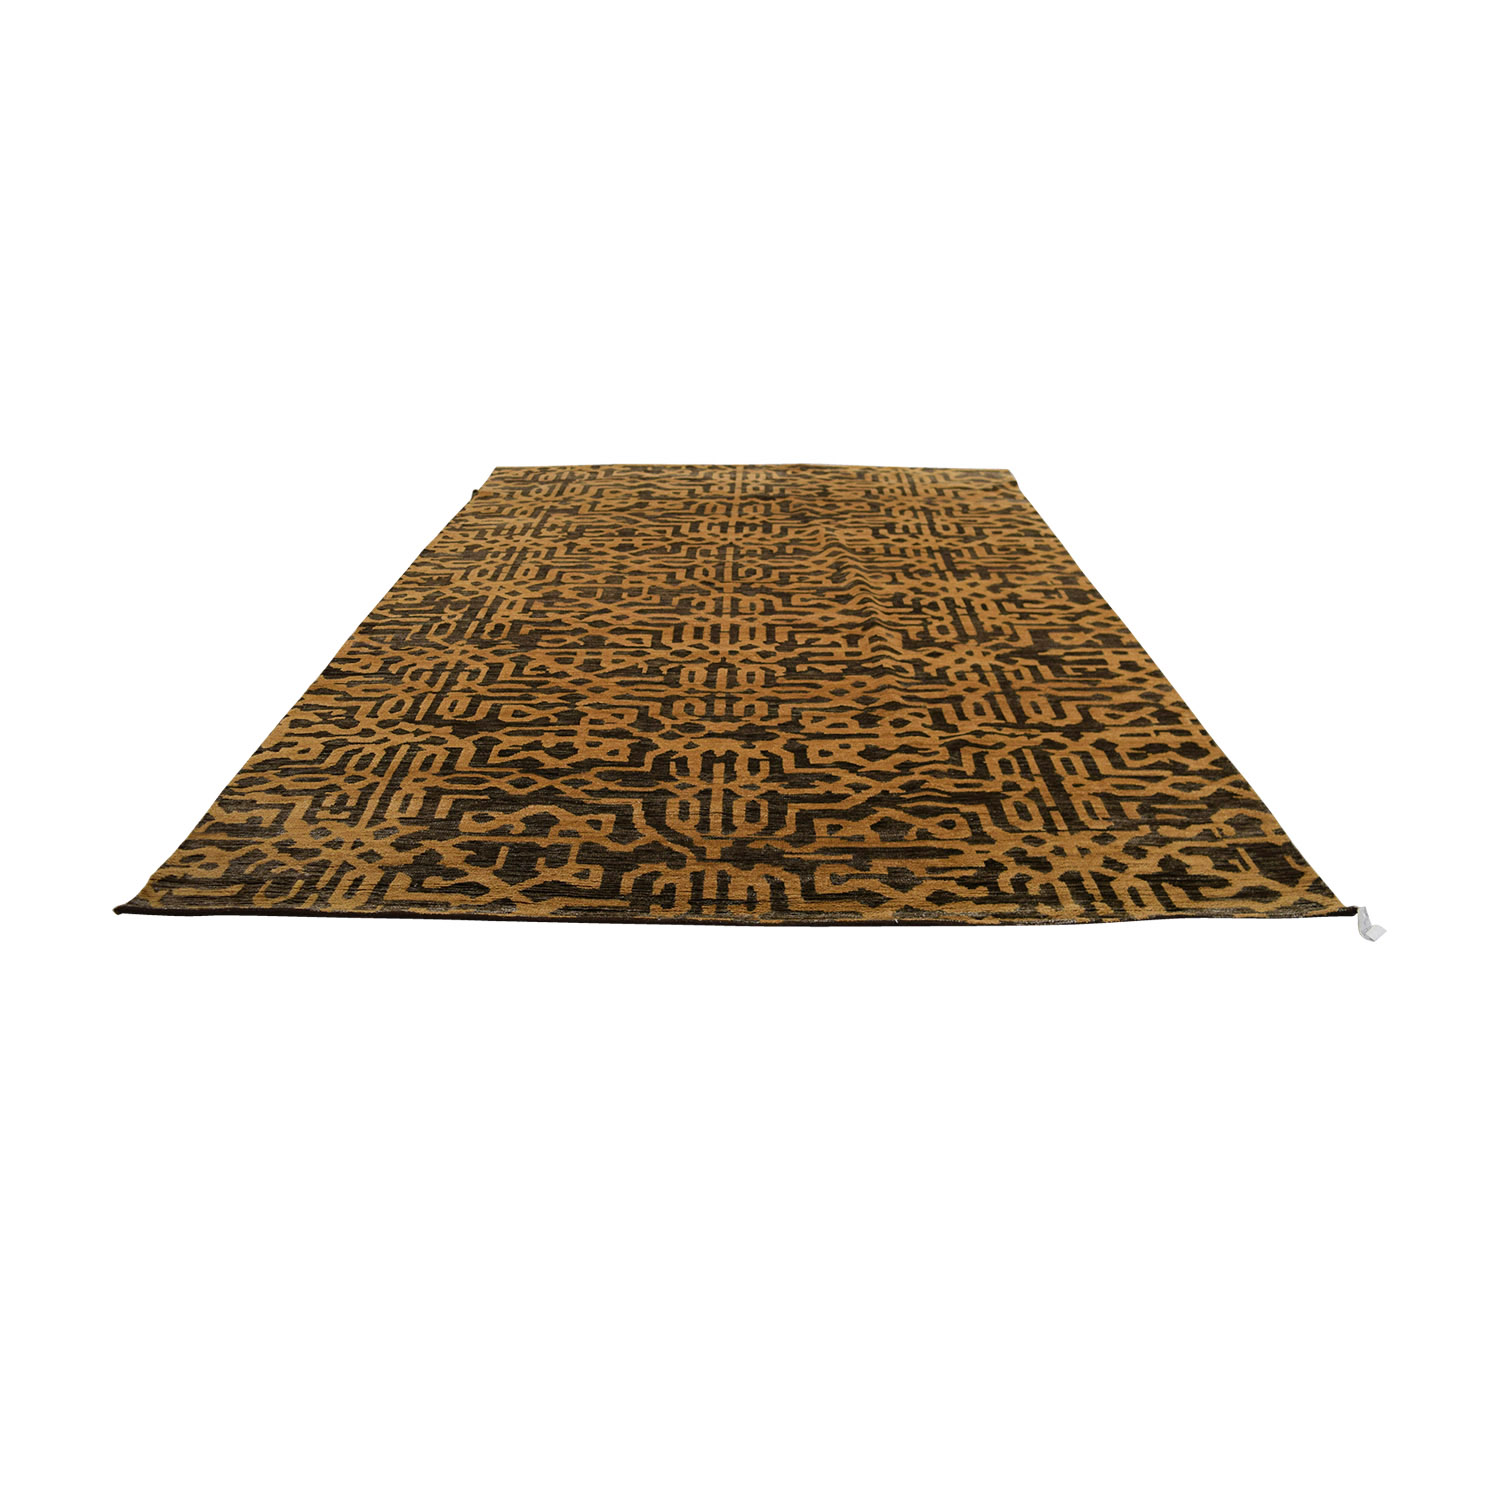 Obeetee Obeetee Hand Knotted Brown and Tan Wool Rug Rugs